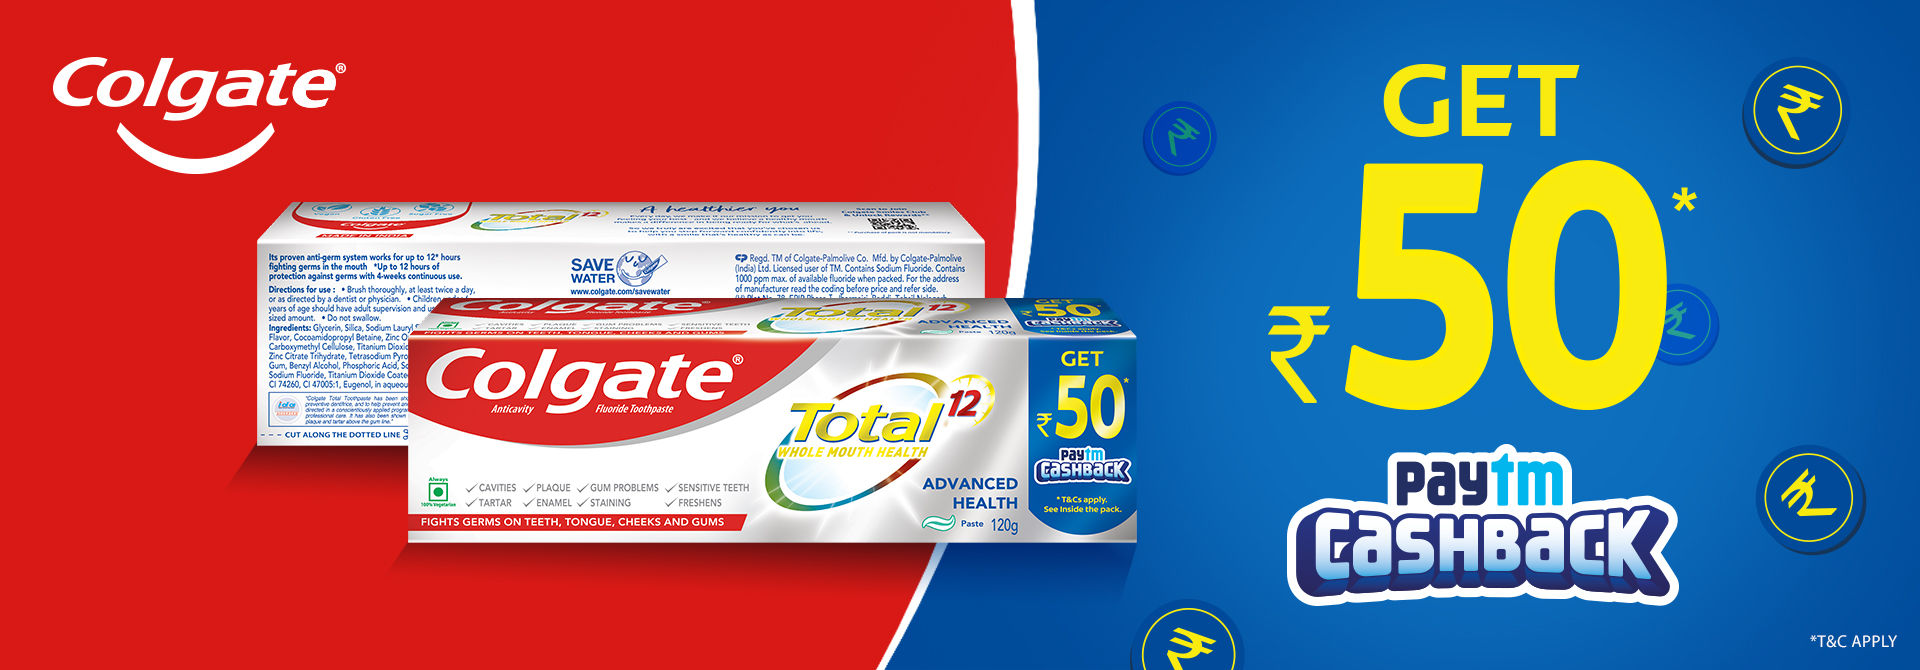 Buy Colgate Total and win an assured Paytm cashback of Rs 50